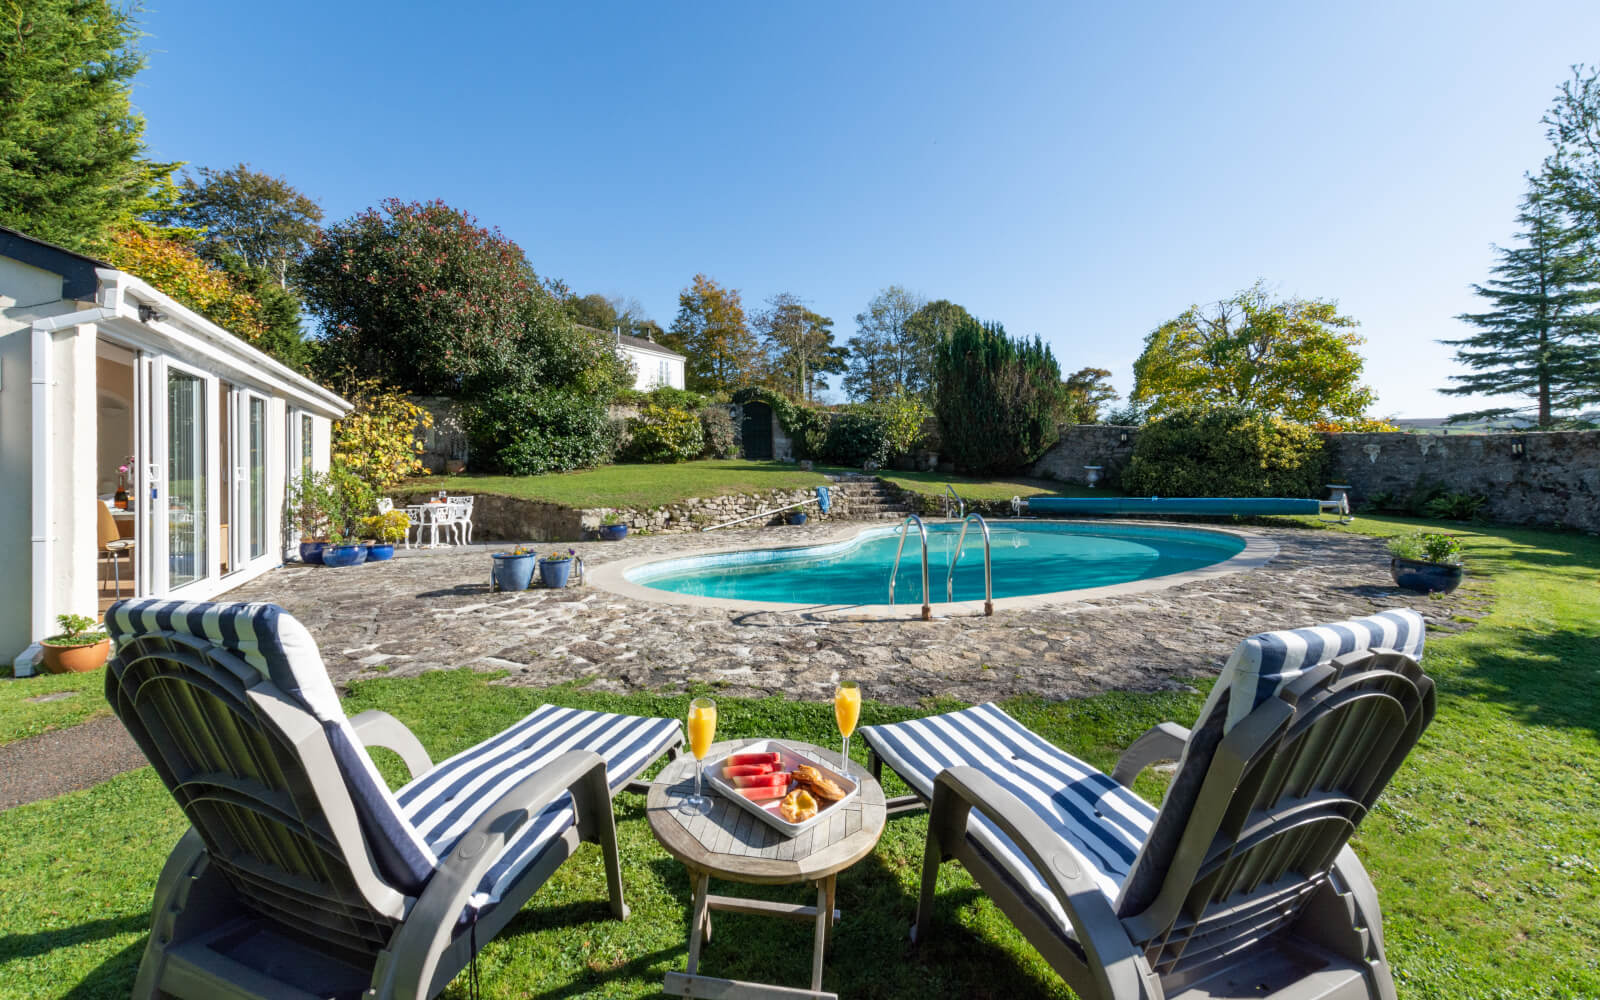 Holiday Cottages With Swimming Pools In England To Rent - Save up to 60%